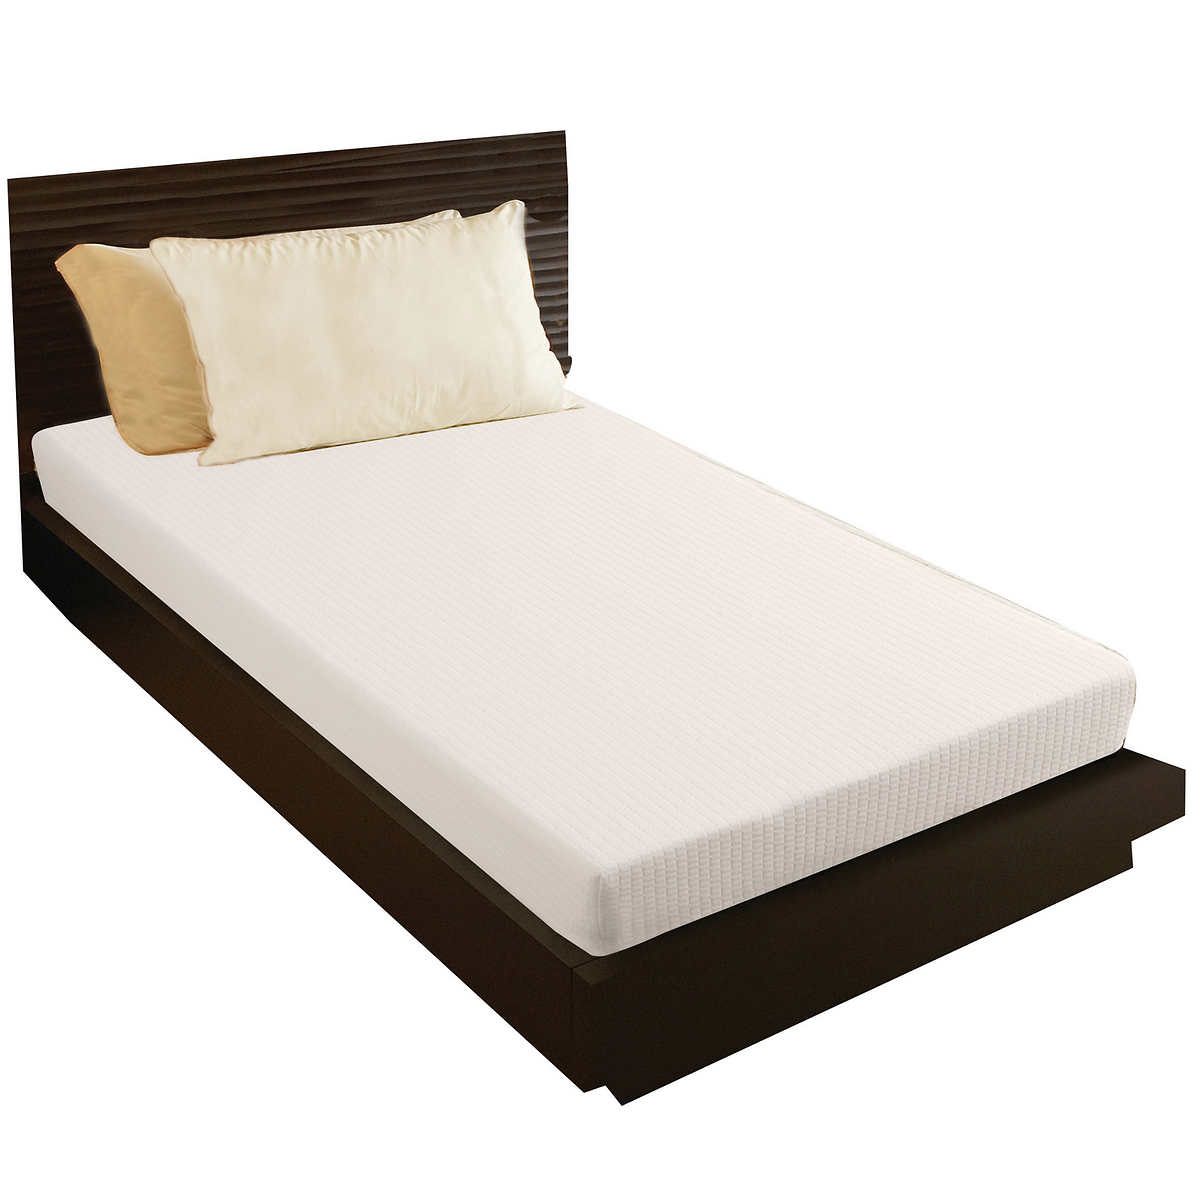 TheraPure 3 Memory Foam Mattress Topper with Cool Touch Cover. (2) · Member  Only Item